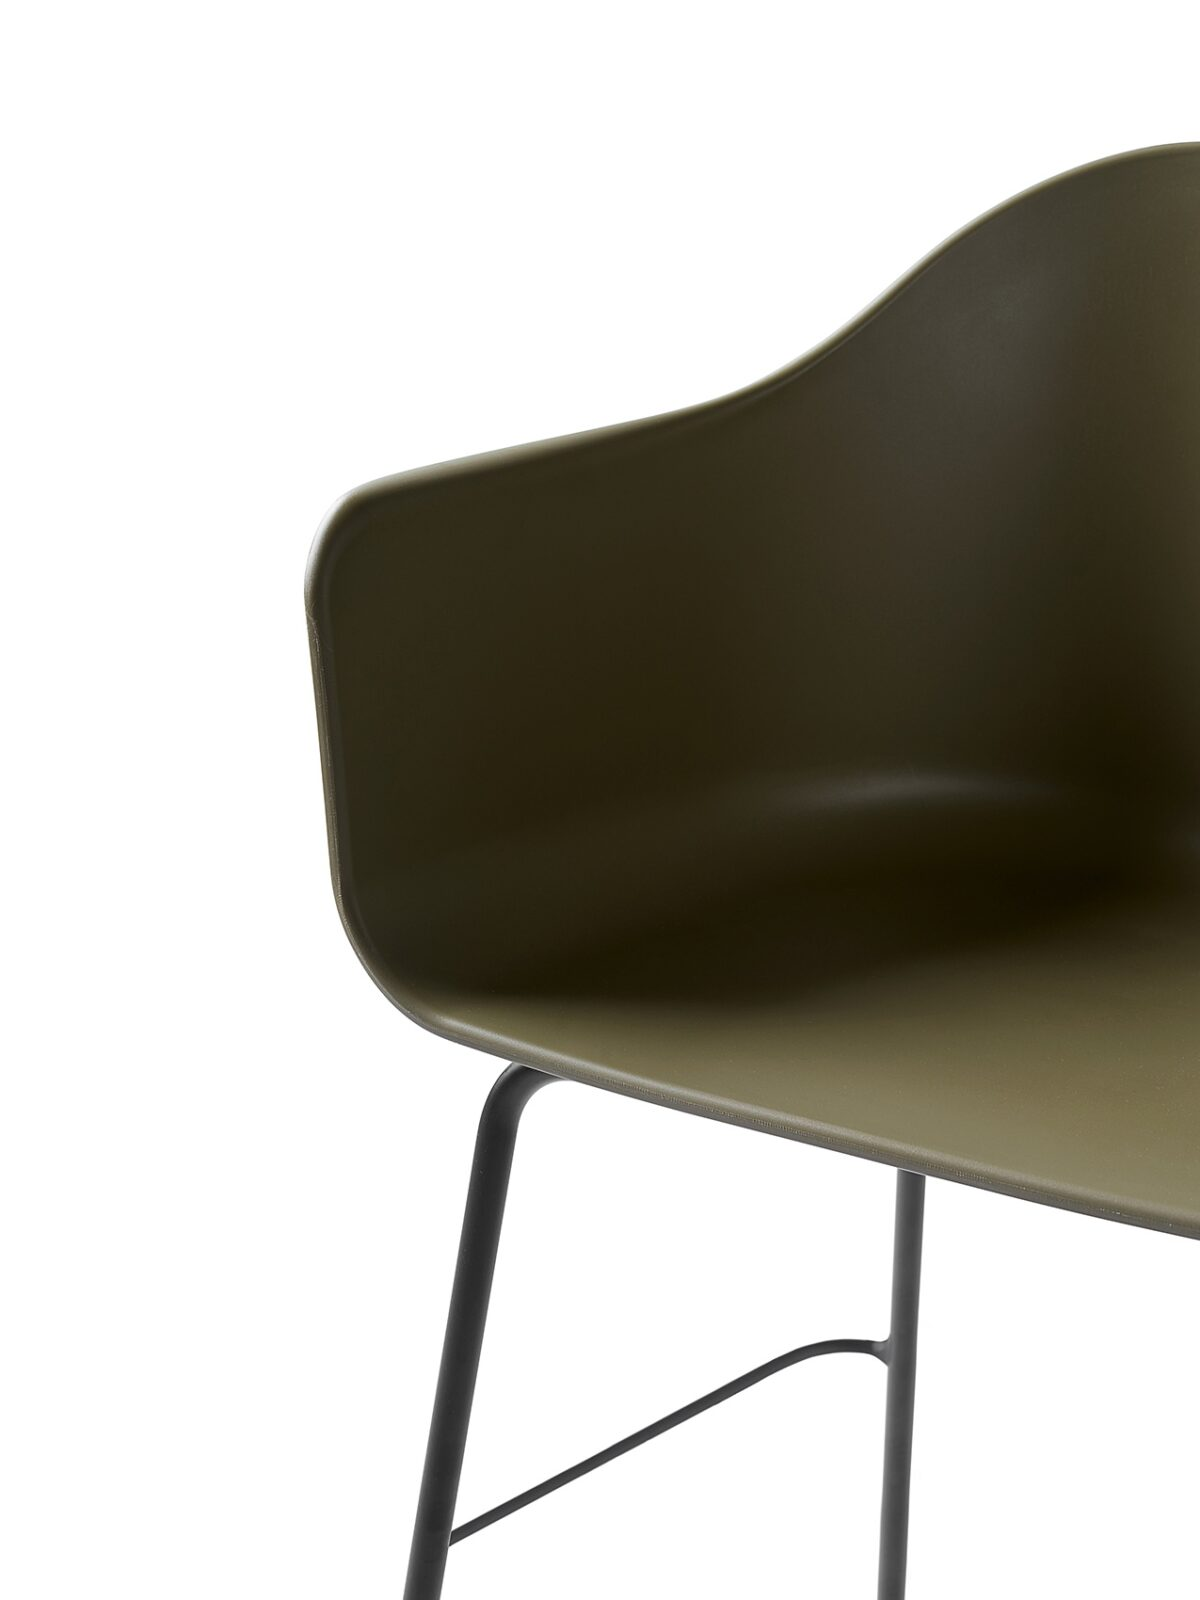 9361139 Harbour Chair counter Olive Black Detail 1